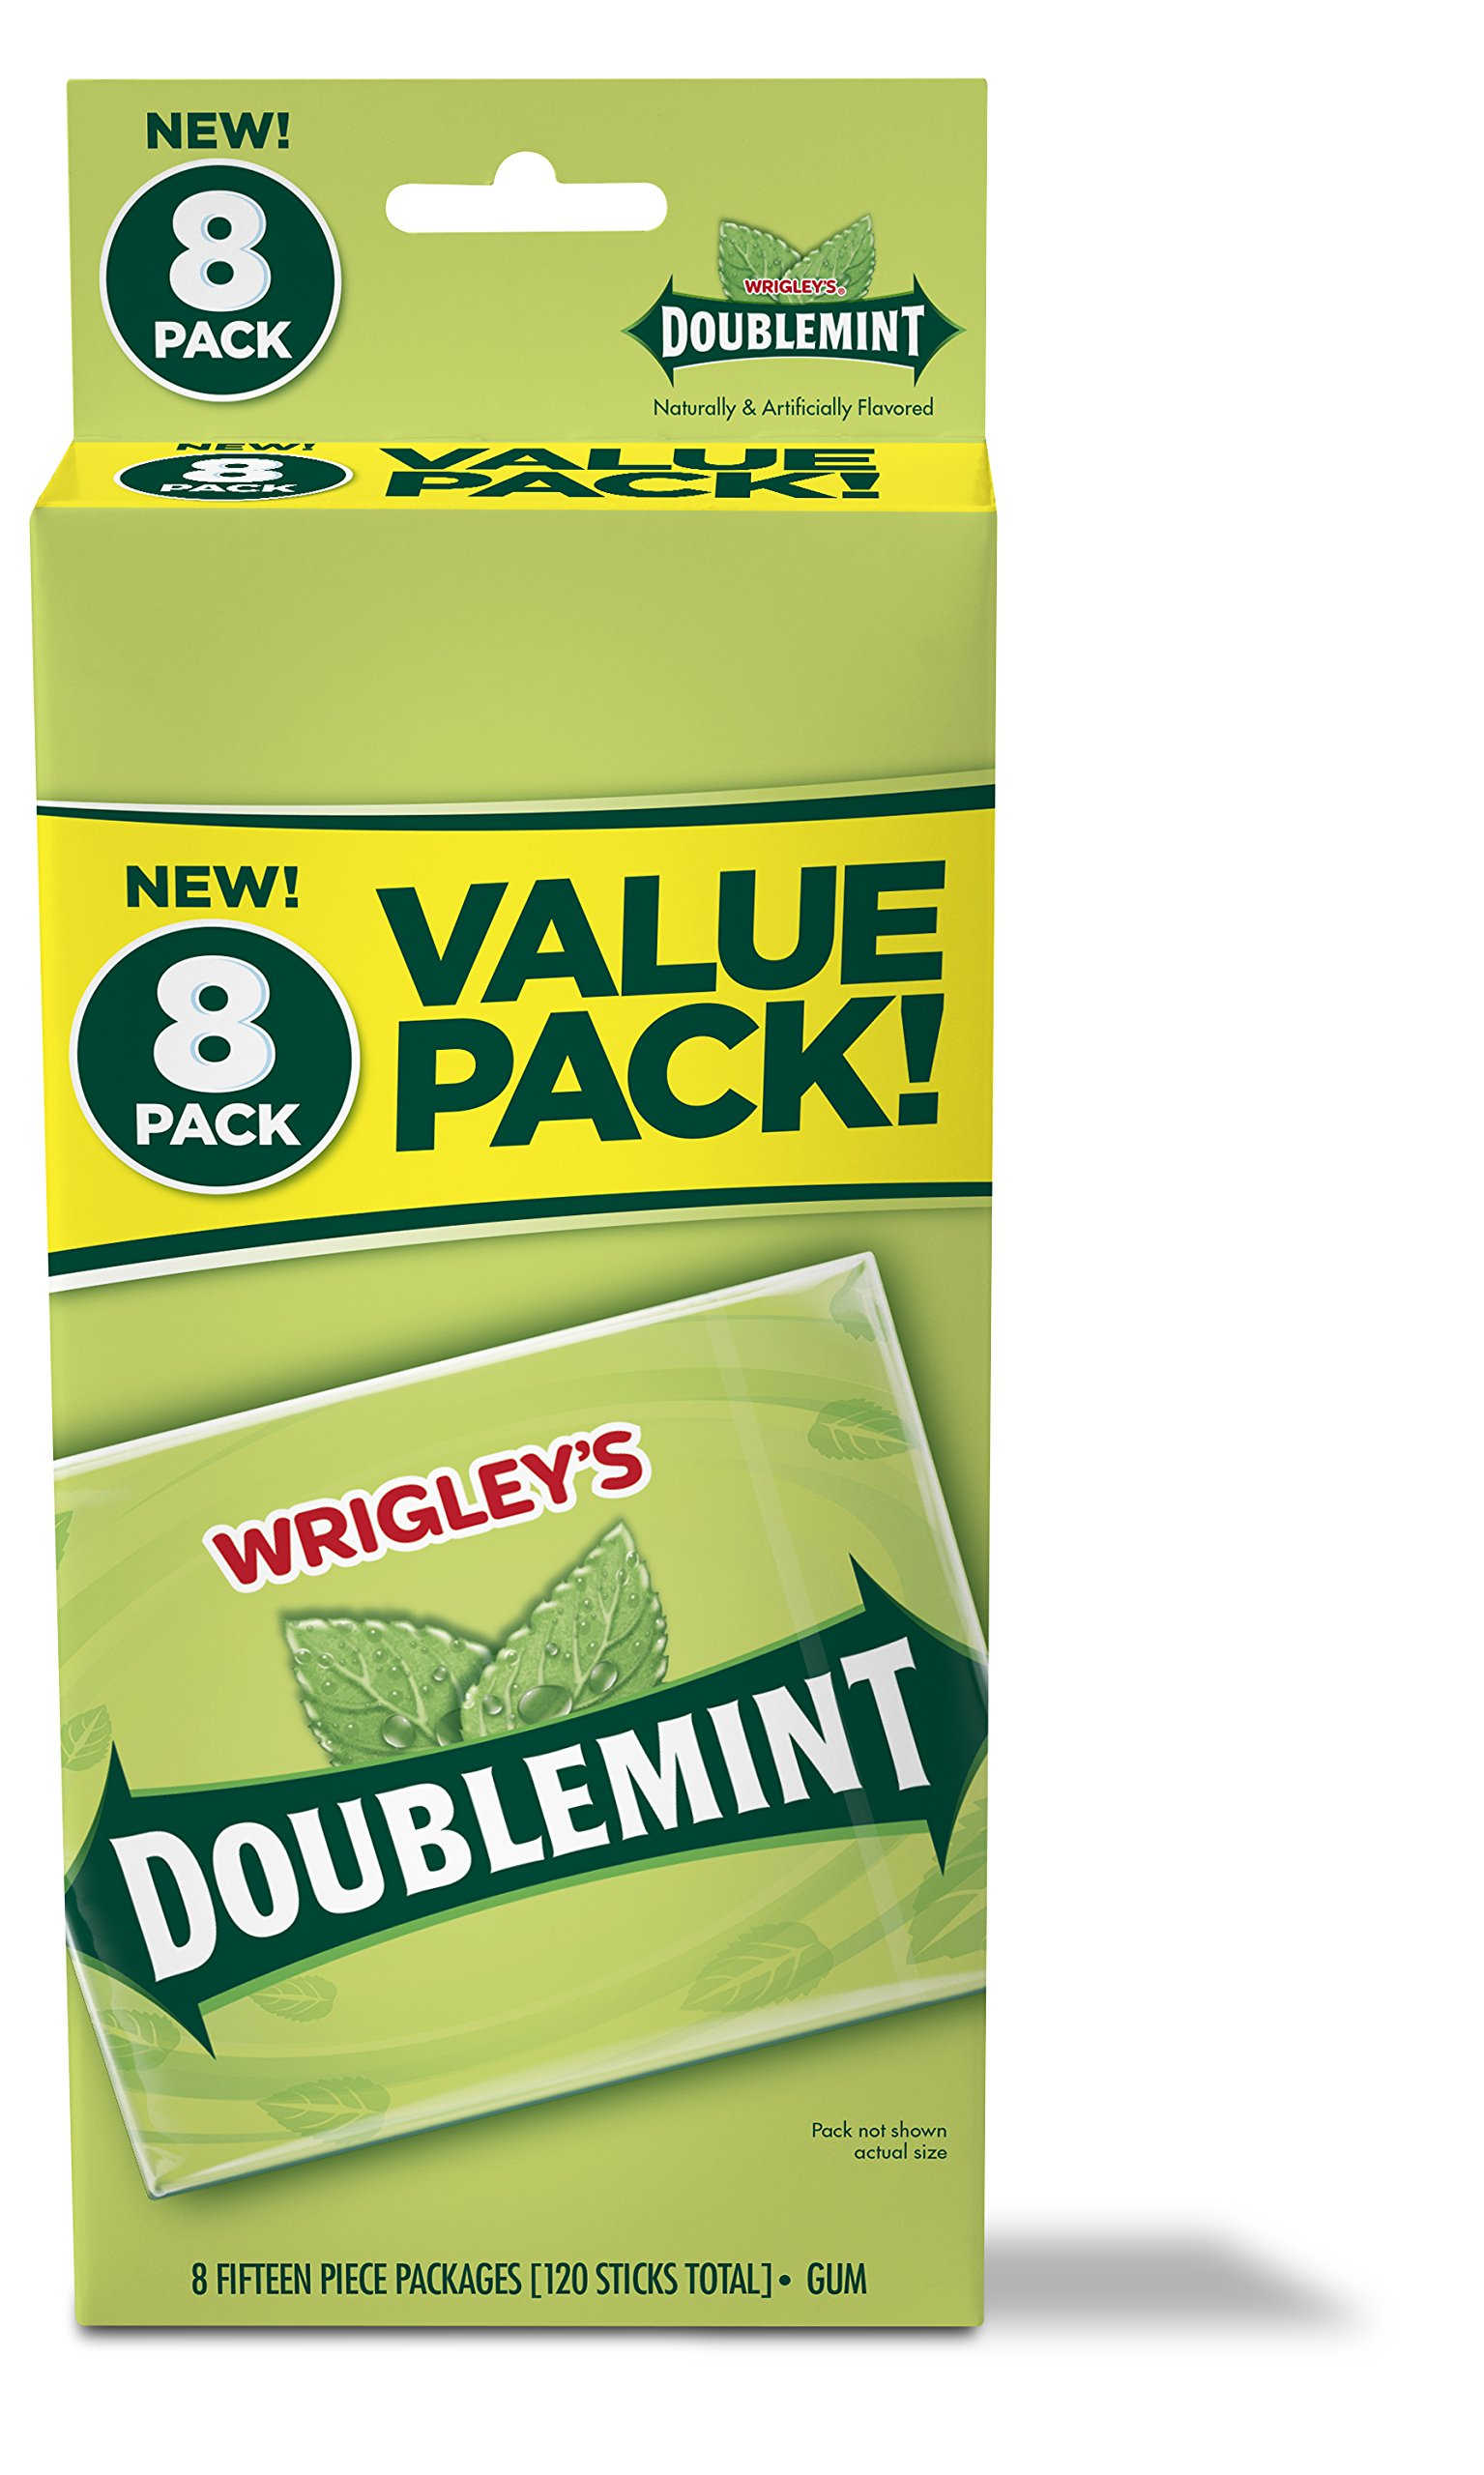 Wrigley's Doublemint Chewing Gum, 6 Value Packs (48 packs total) by Doublemint Gum